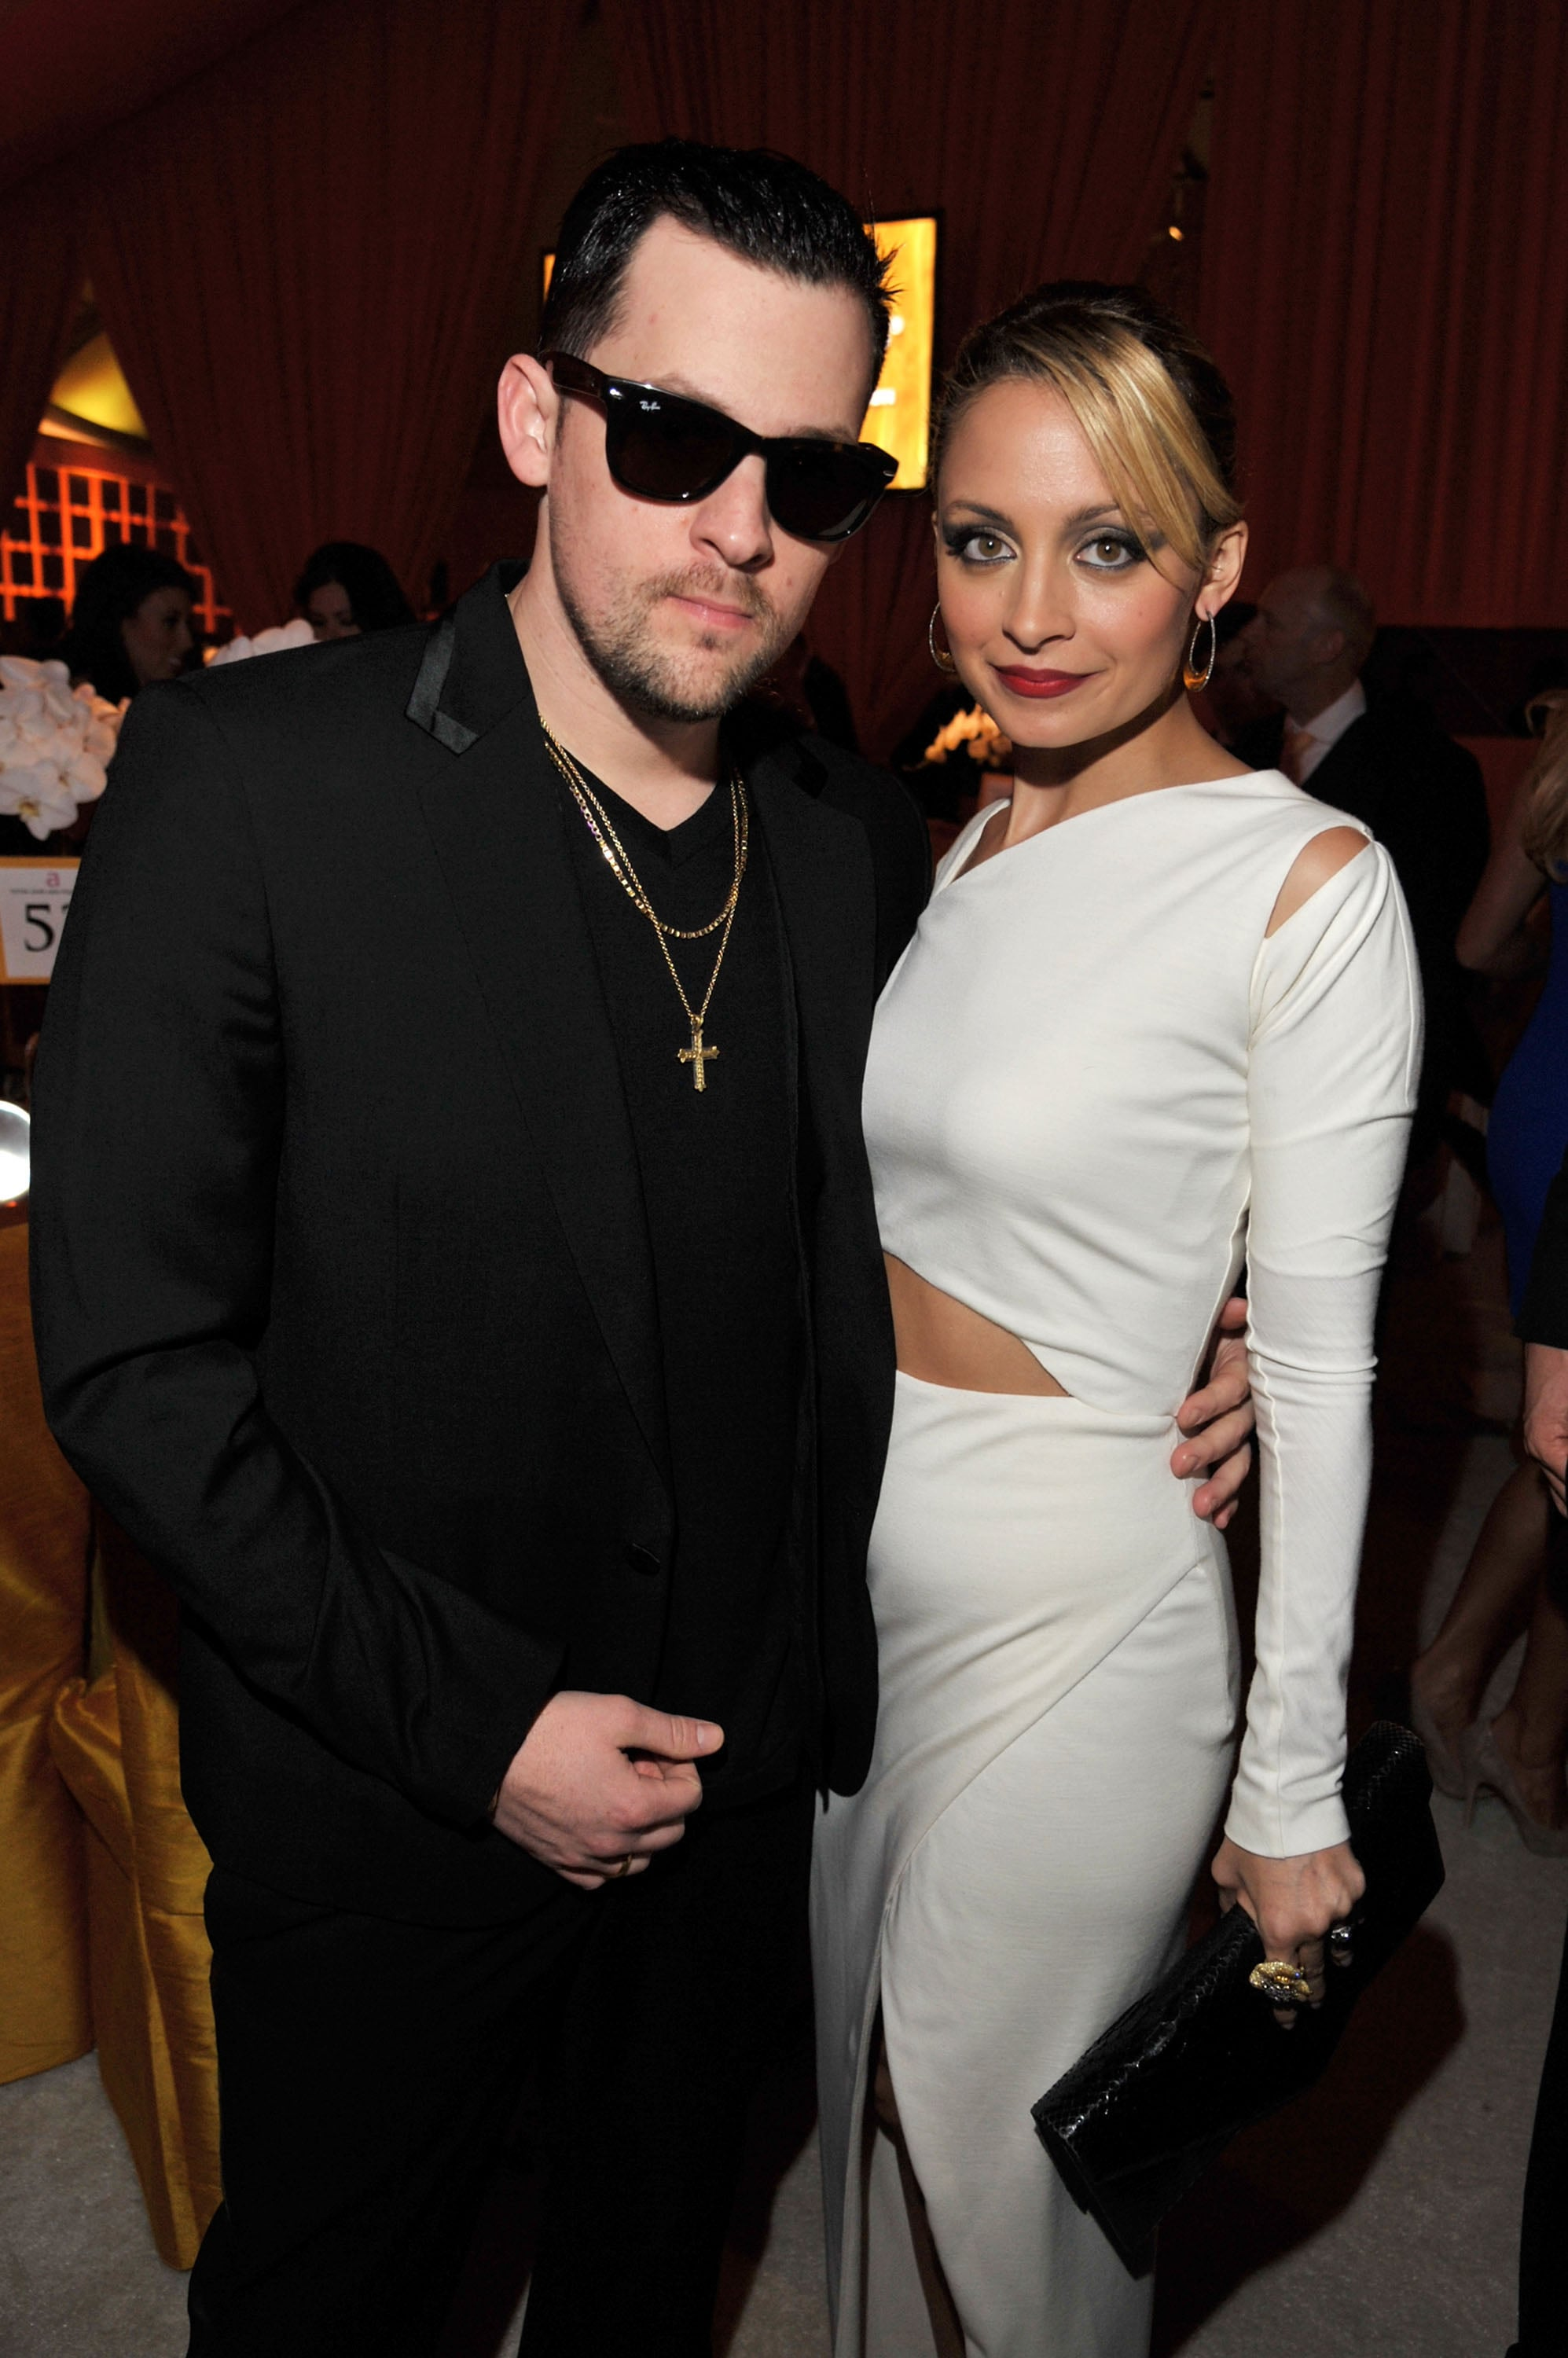 Nicole went for a vintage look when she and Joel attended Elton John's annual Oscars viewing party in February 2011.